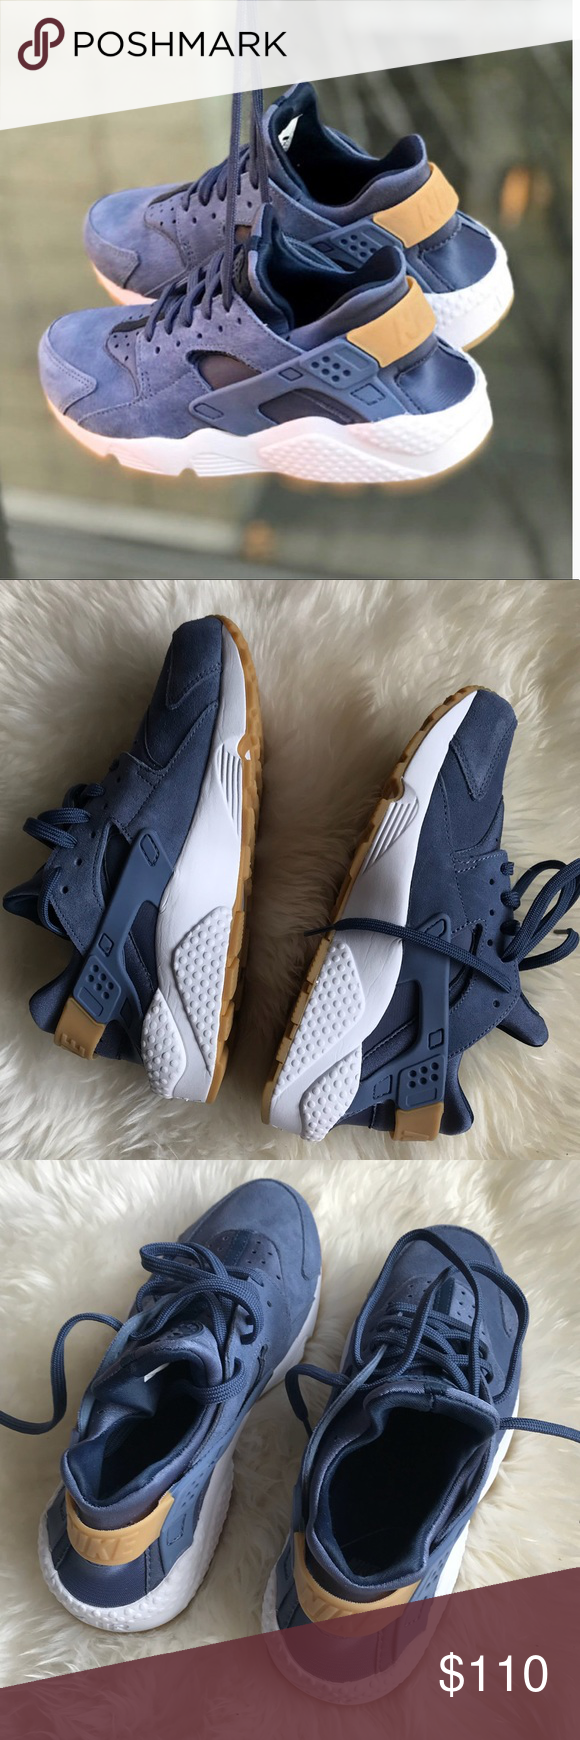 outlet store 61784 f31c3 Nike air huarache run sd sneakers, diffused blue True to size. Nike Air  cushioning pairs with strategically placed rubber pods to provide comfort  and ...